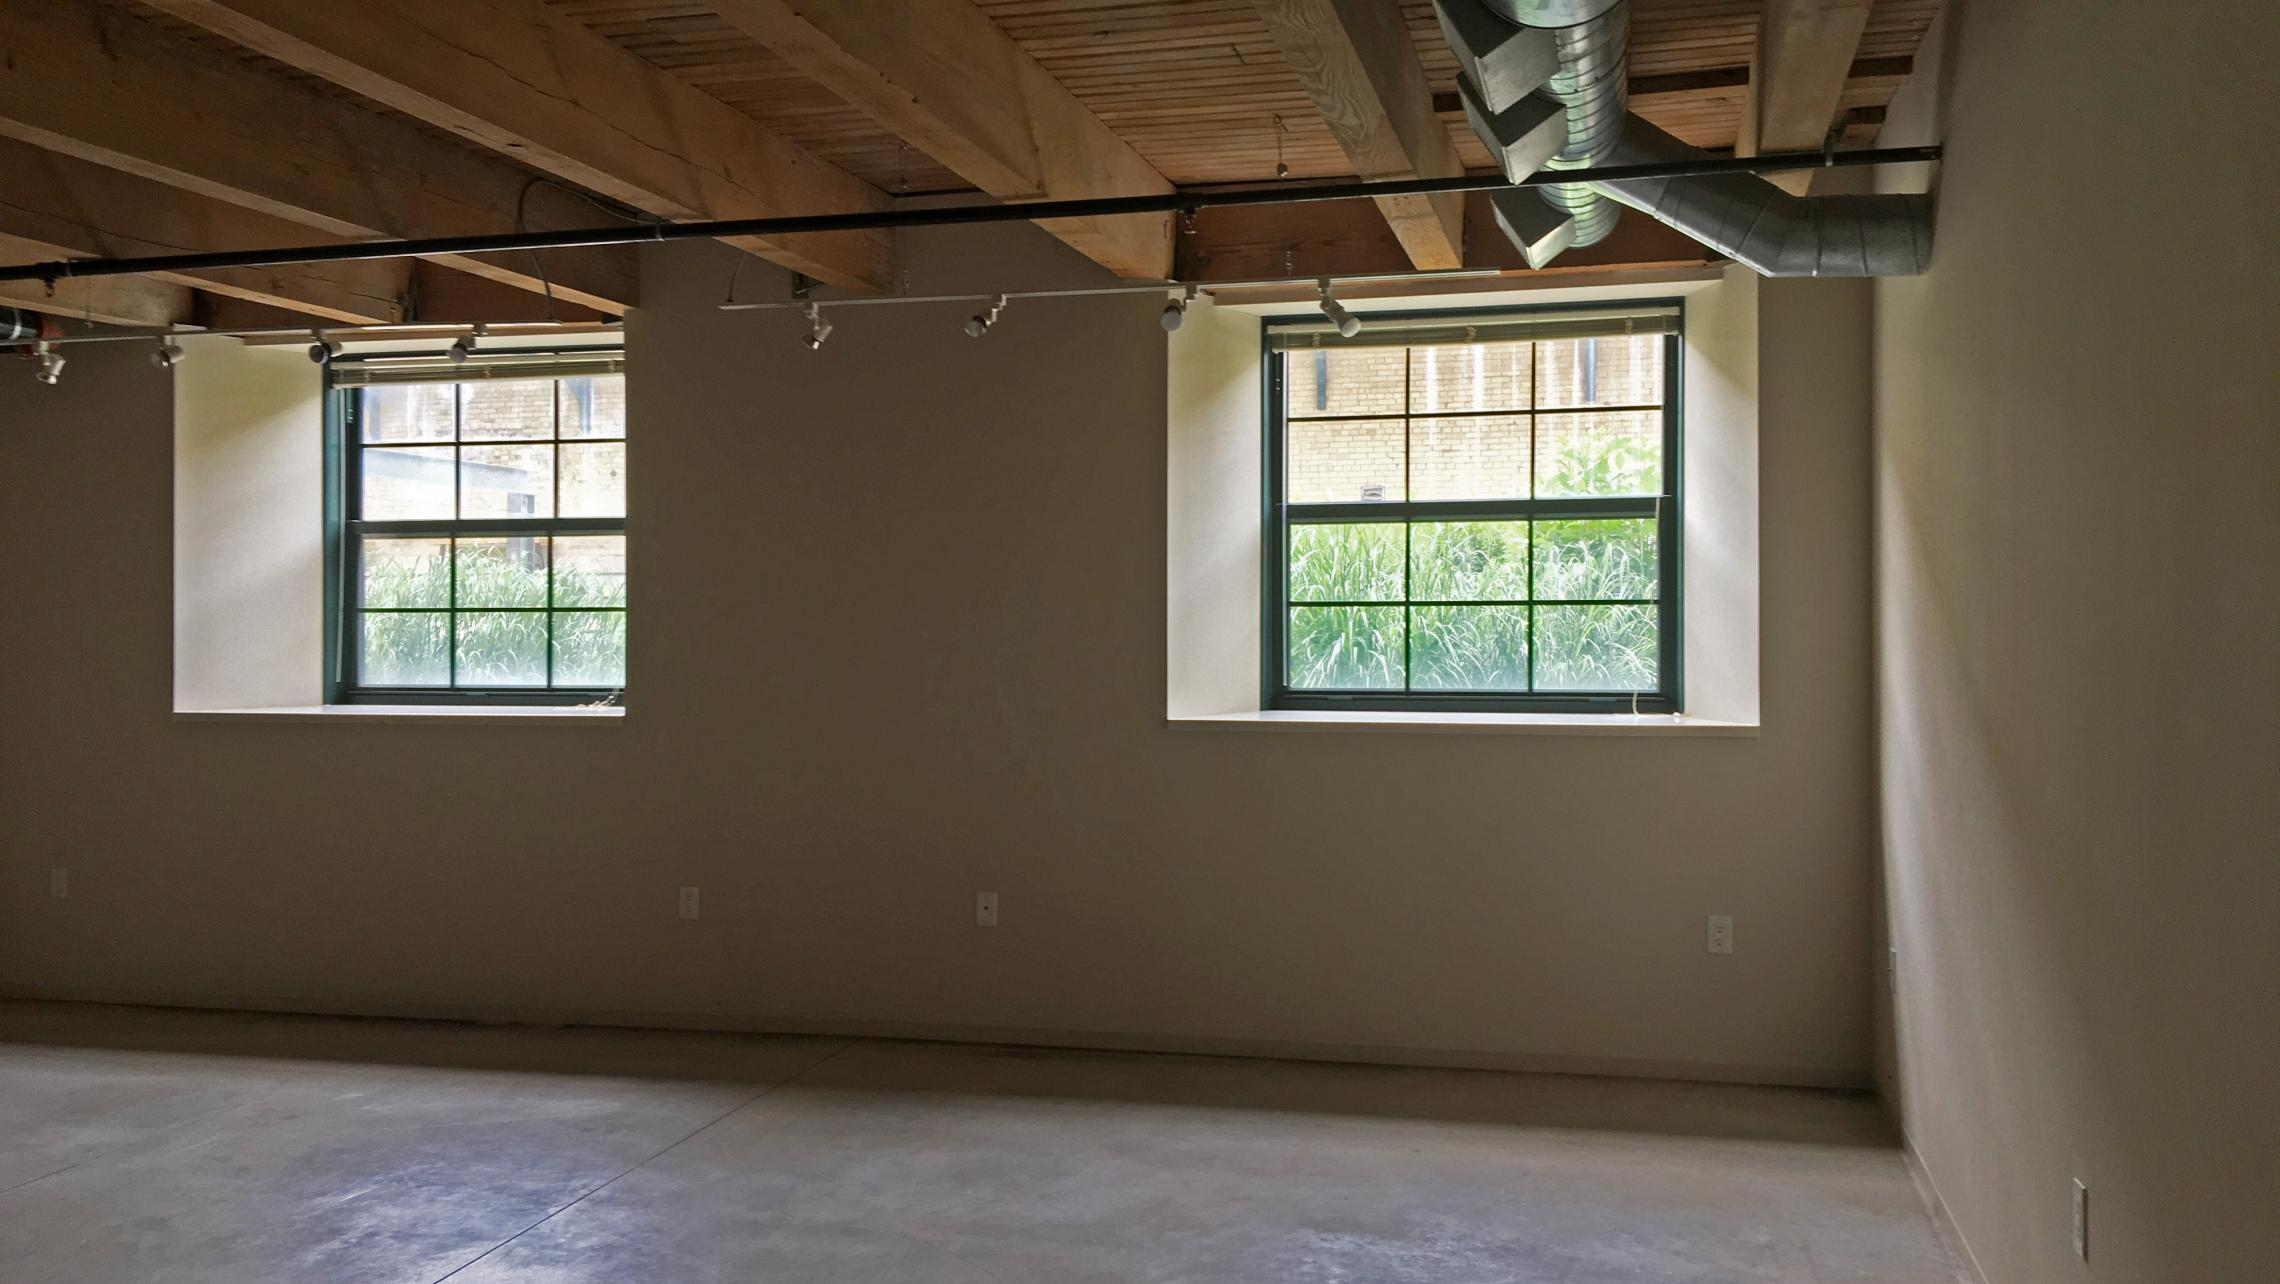 ULI Tobacco Lofts - E104 - Windows and Exposed Beams